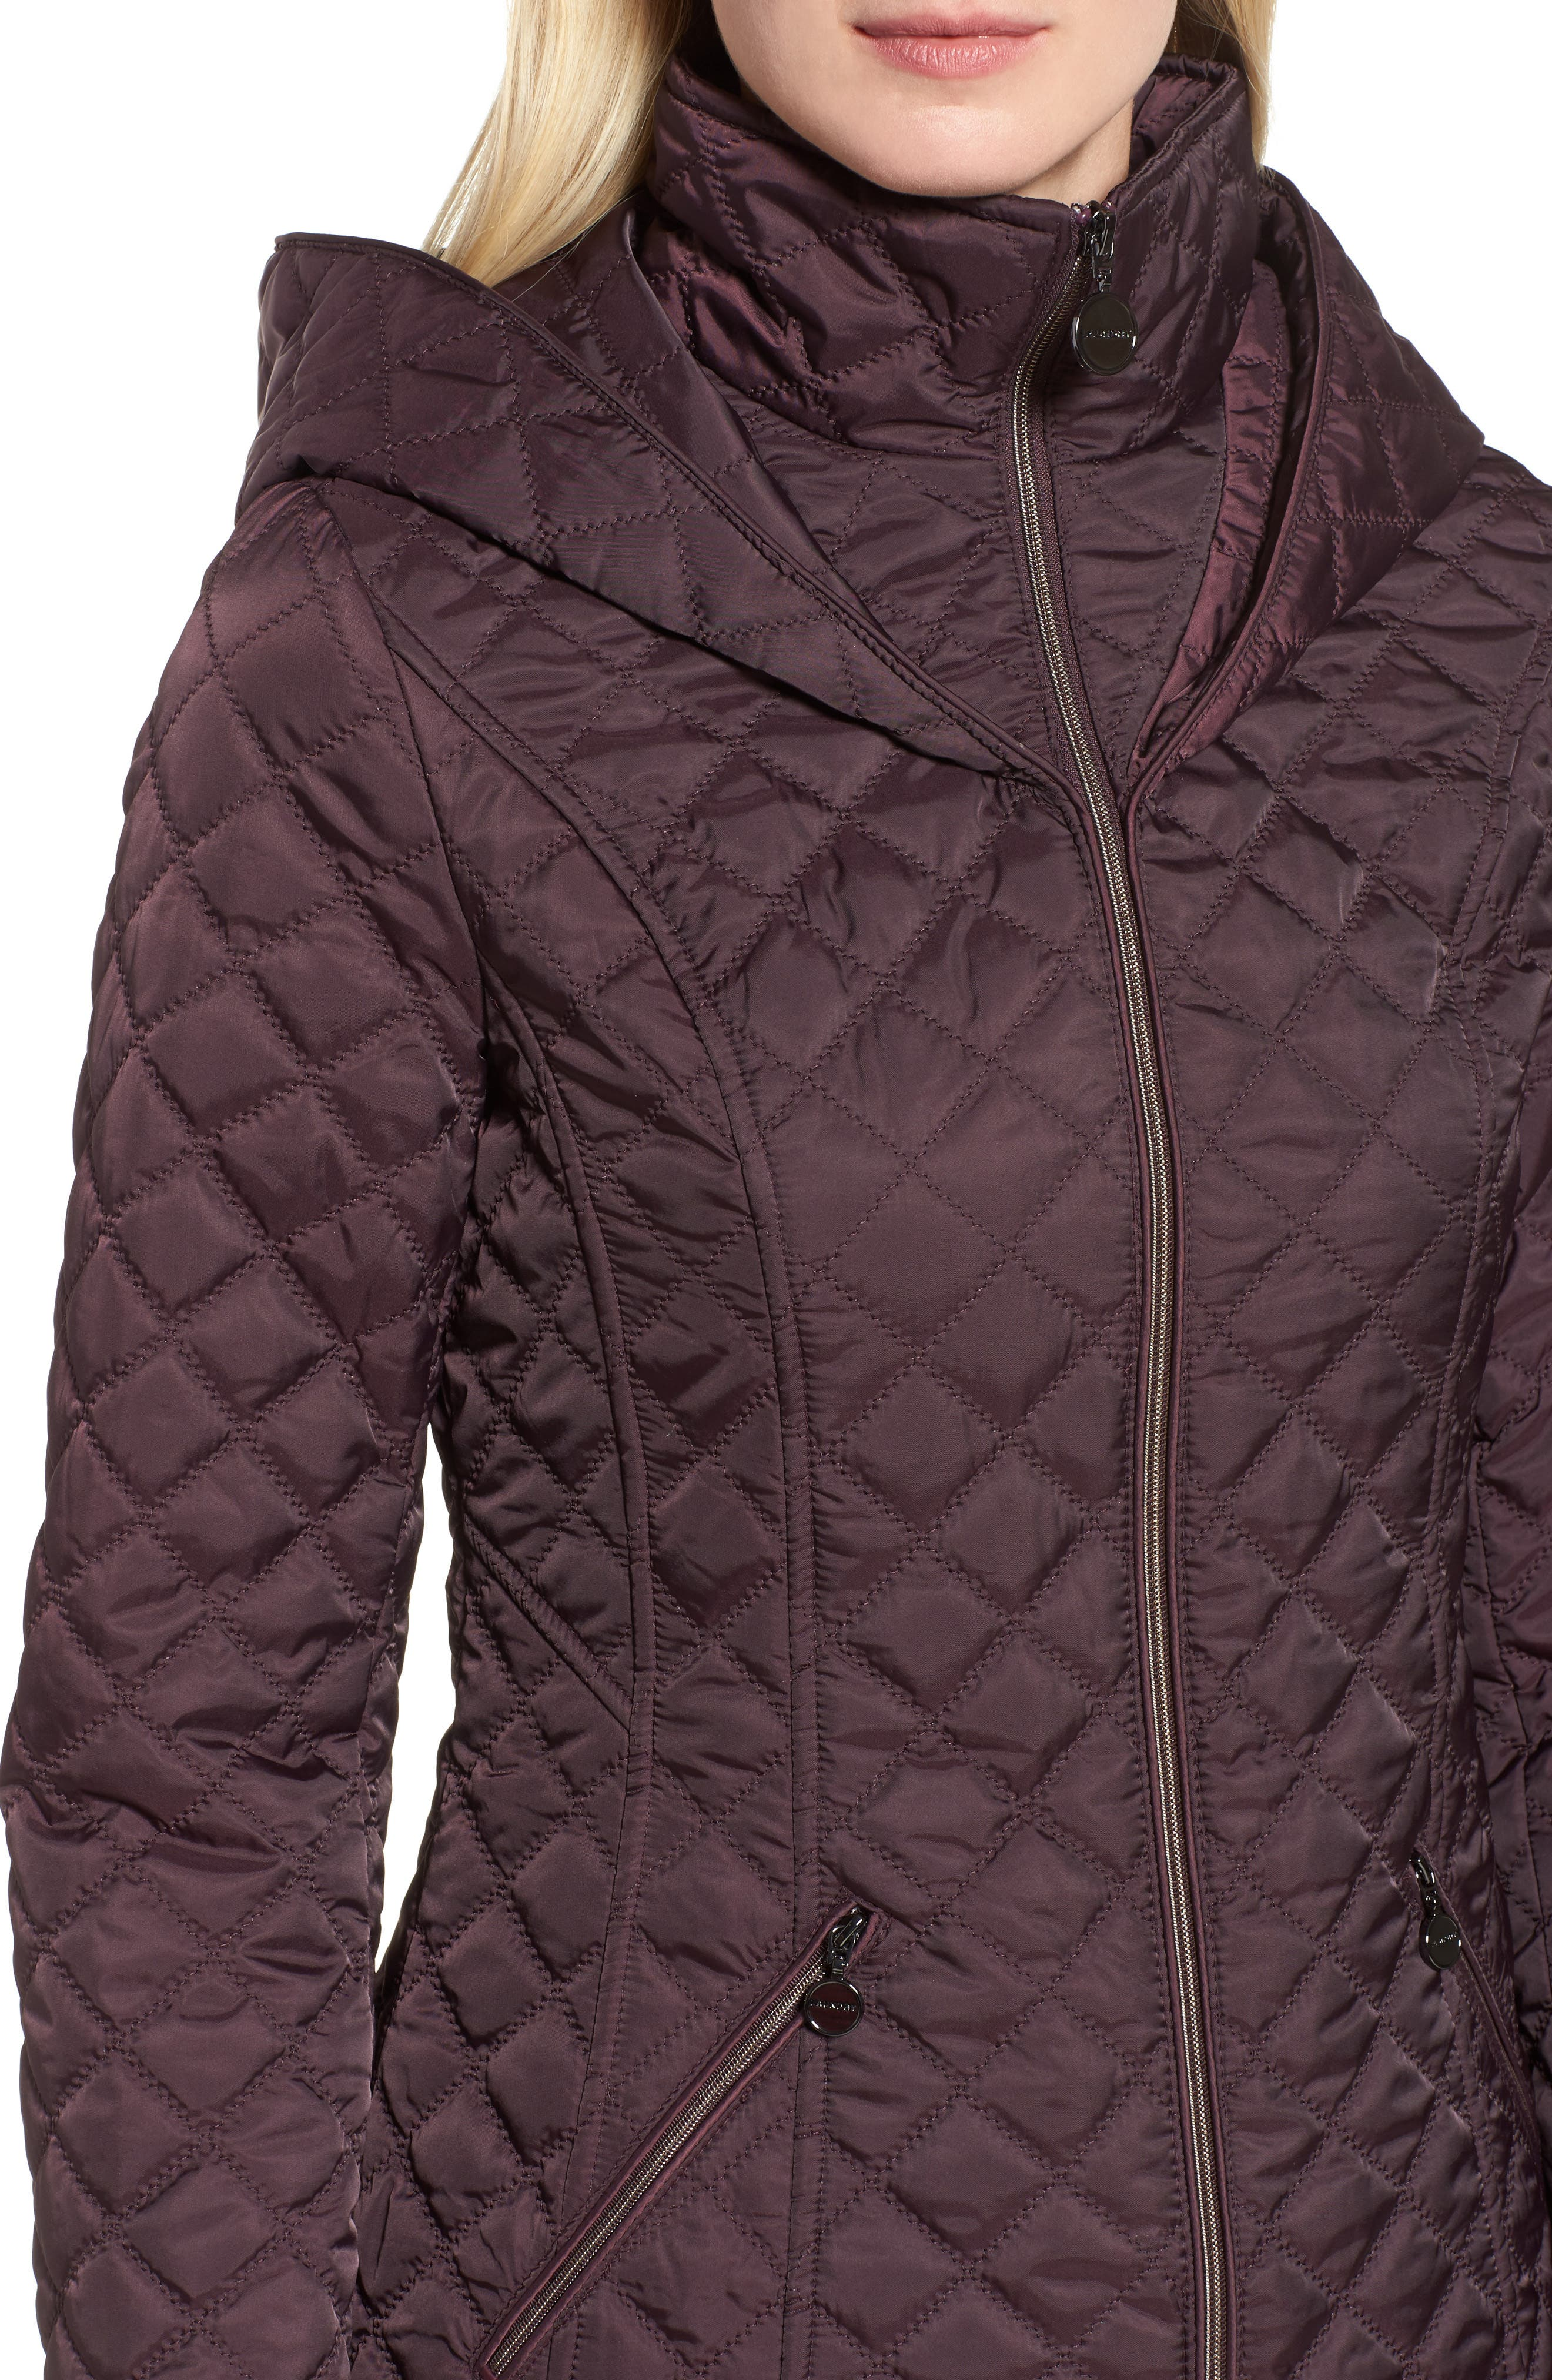 Hooded Quilted Jacket,                             Alternate thumbnail 3, color,                             Claret